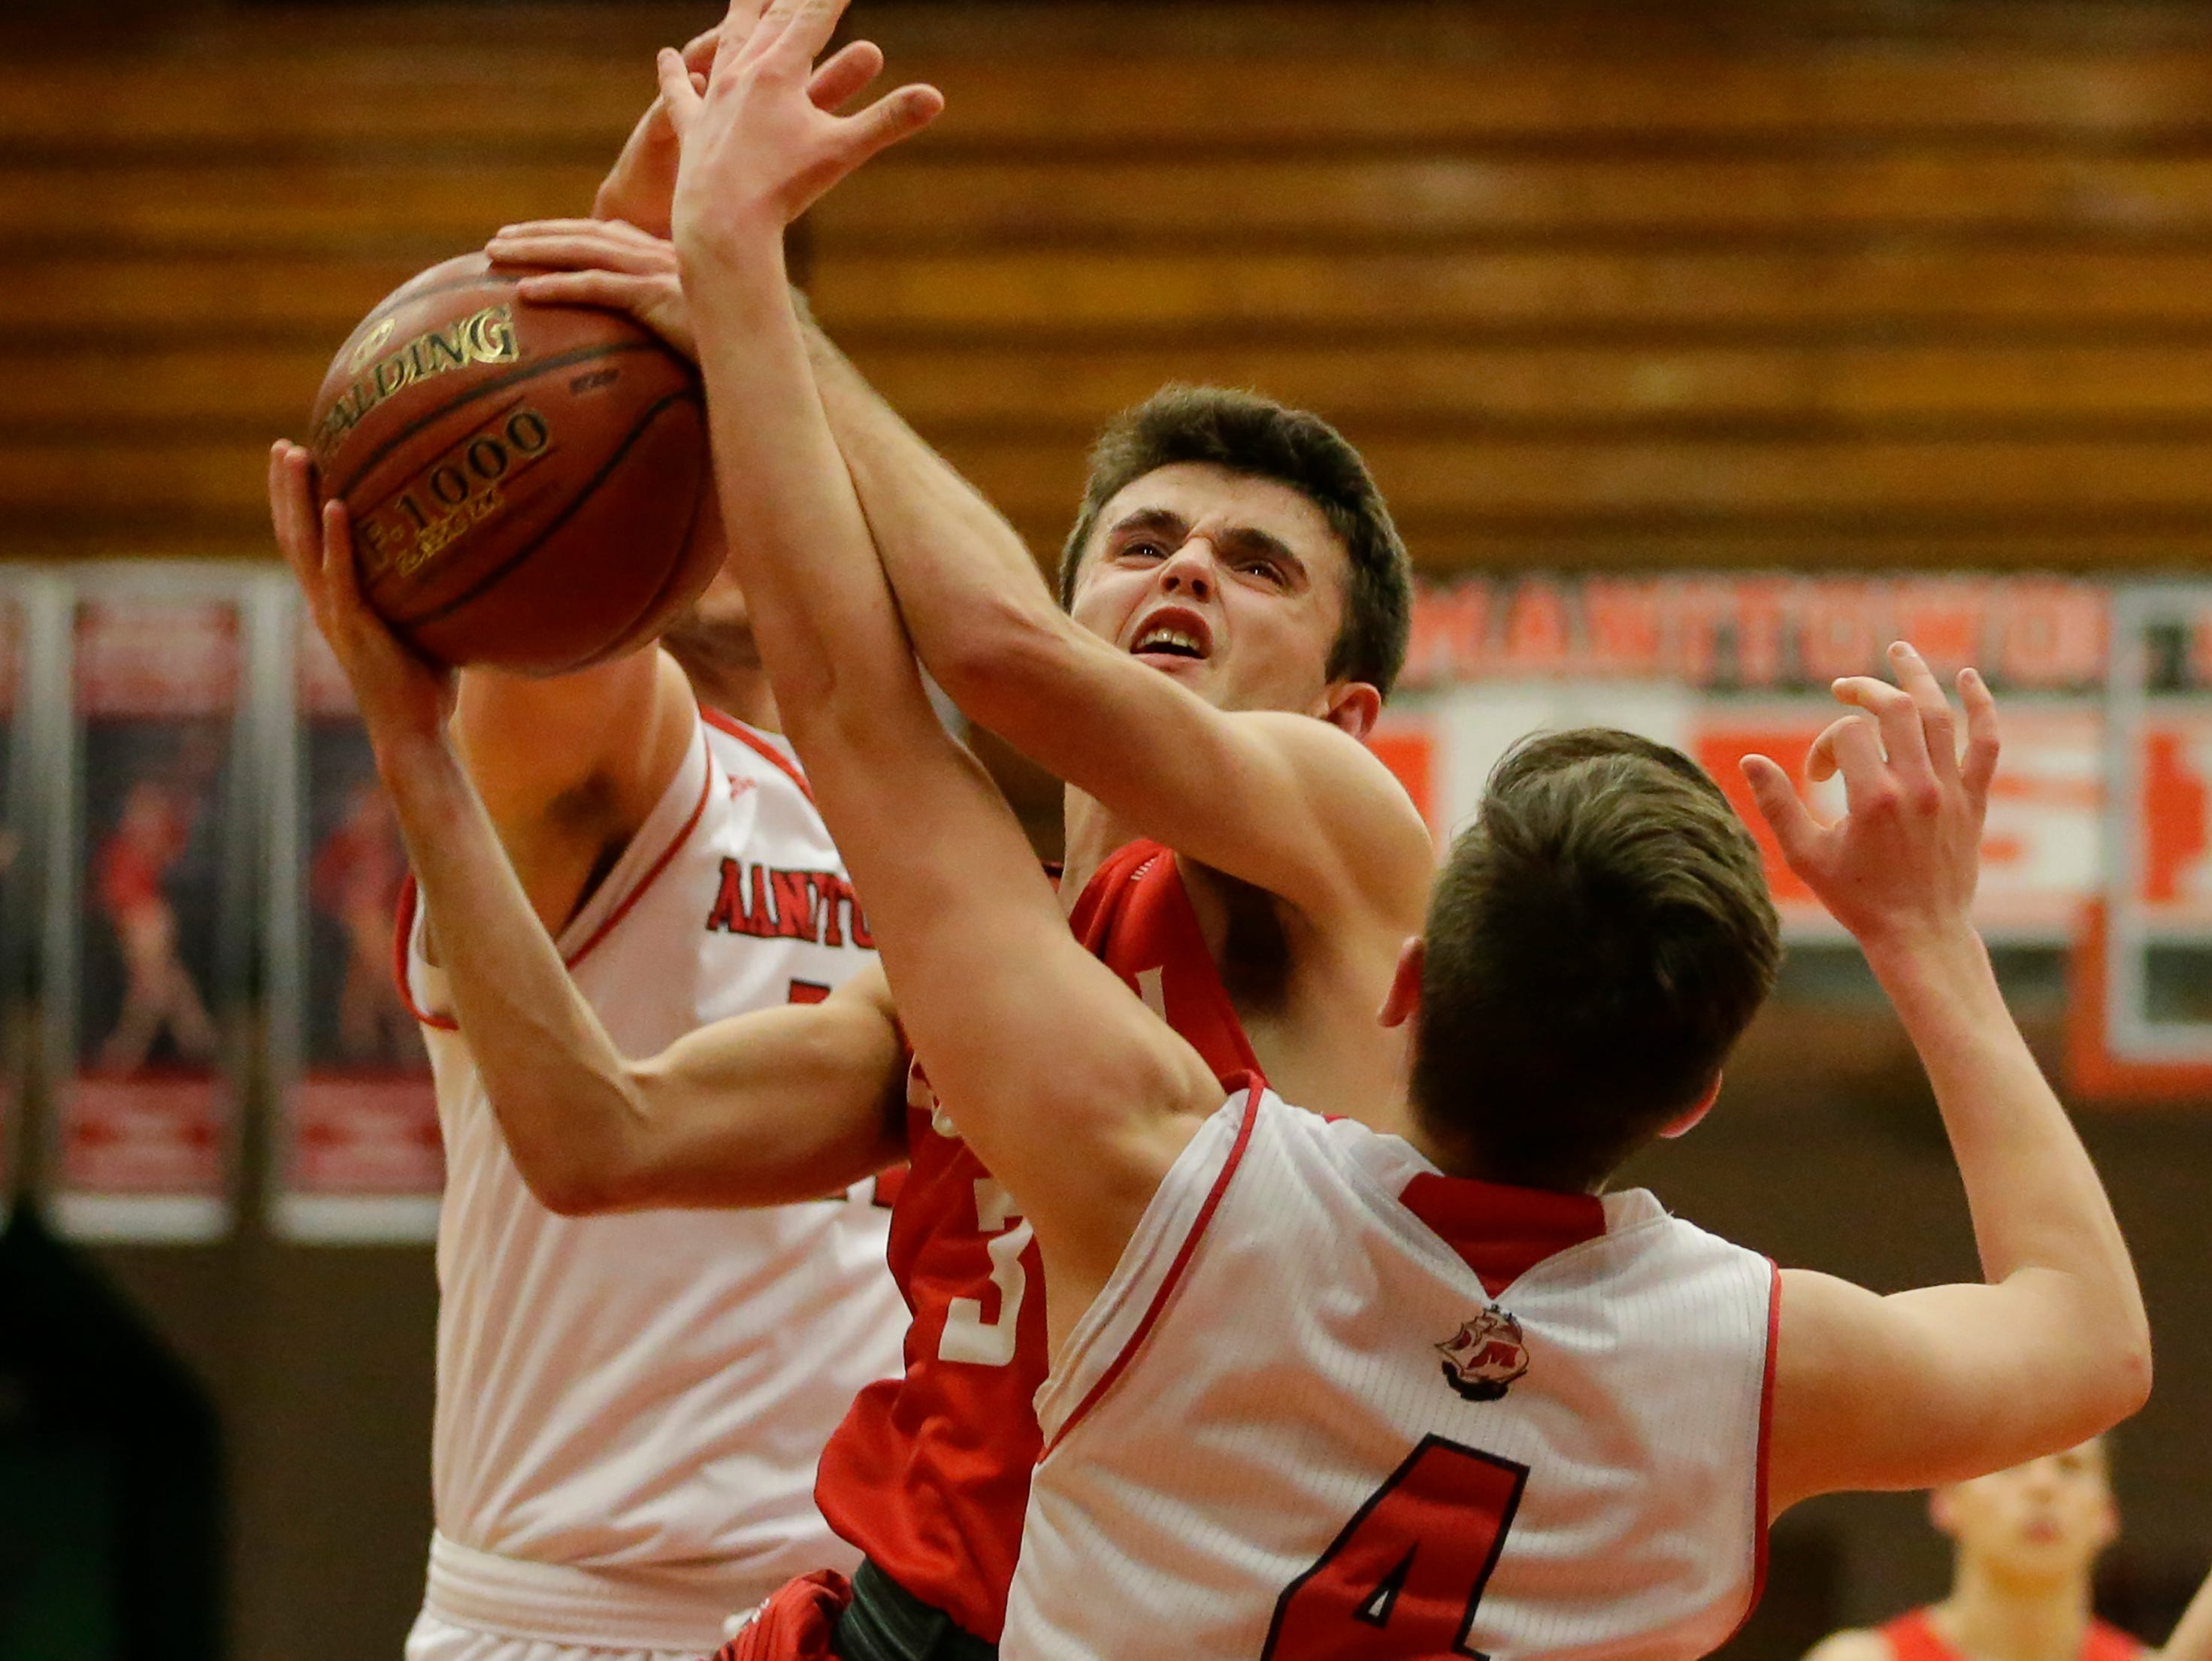 Sheboygan South's Josh Govek (3) puts up a shot against Manitowoc Lincoln's Mason Dopirak (4) at Manitowoc Lincoln High School Tuesday, February 5, 2019, in Manitowoc, Wis. Joshua Clark/USA TODAY NETWORK-Wisconsin